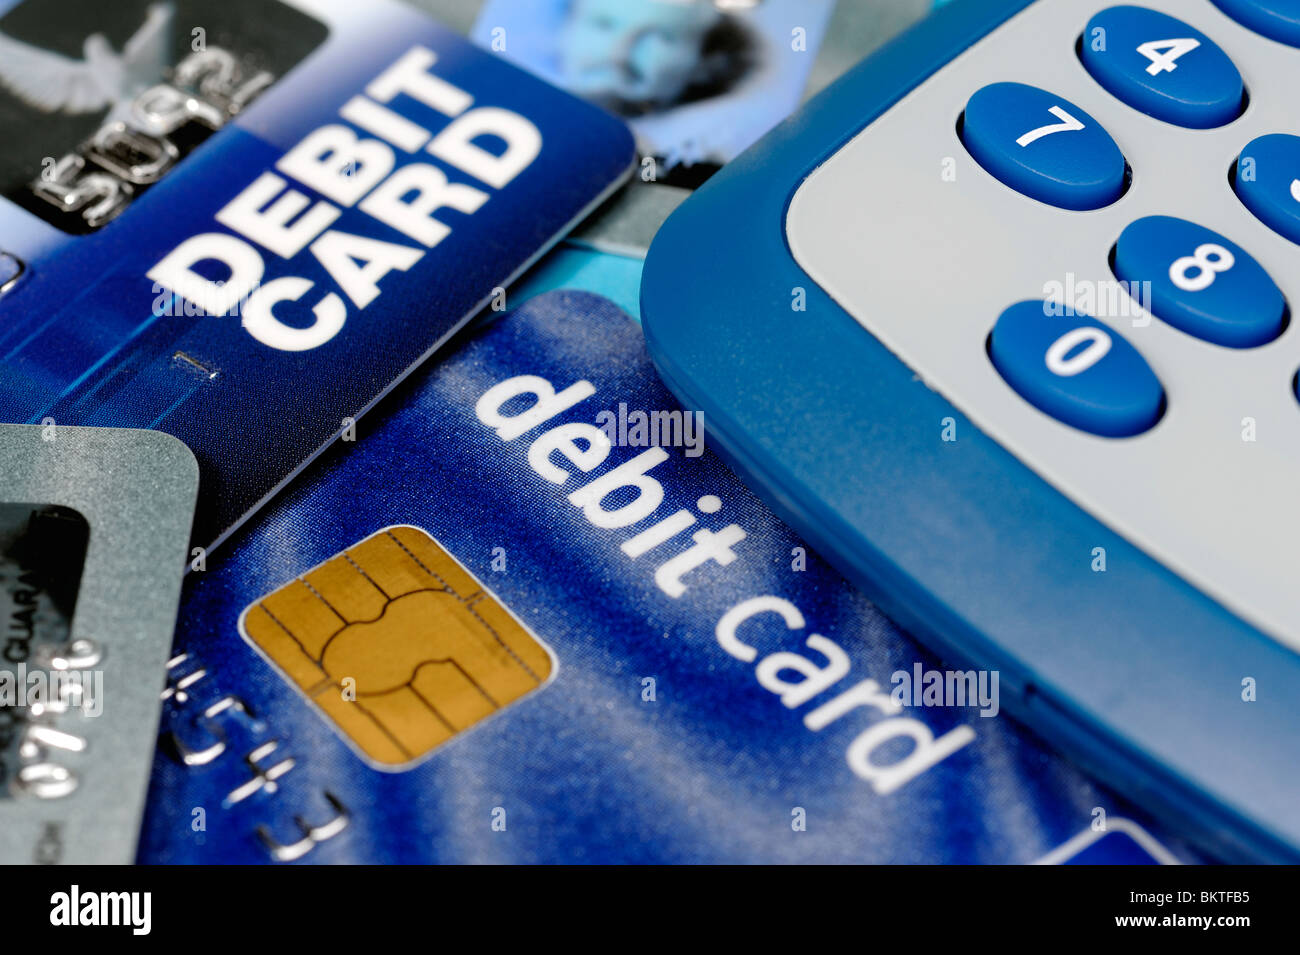 Debit cards and calculator - Stock Image